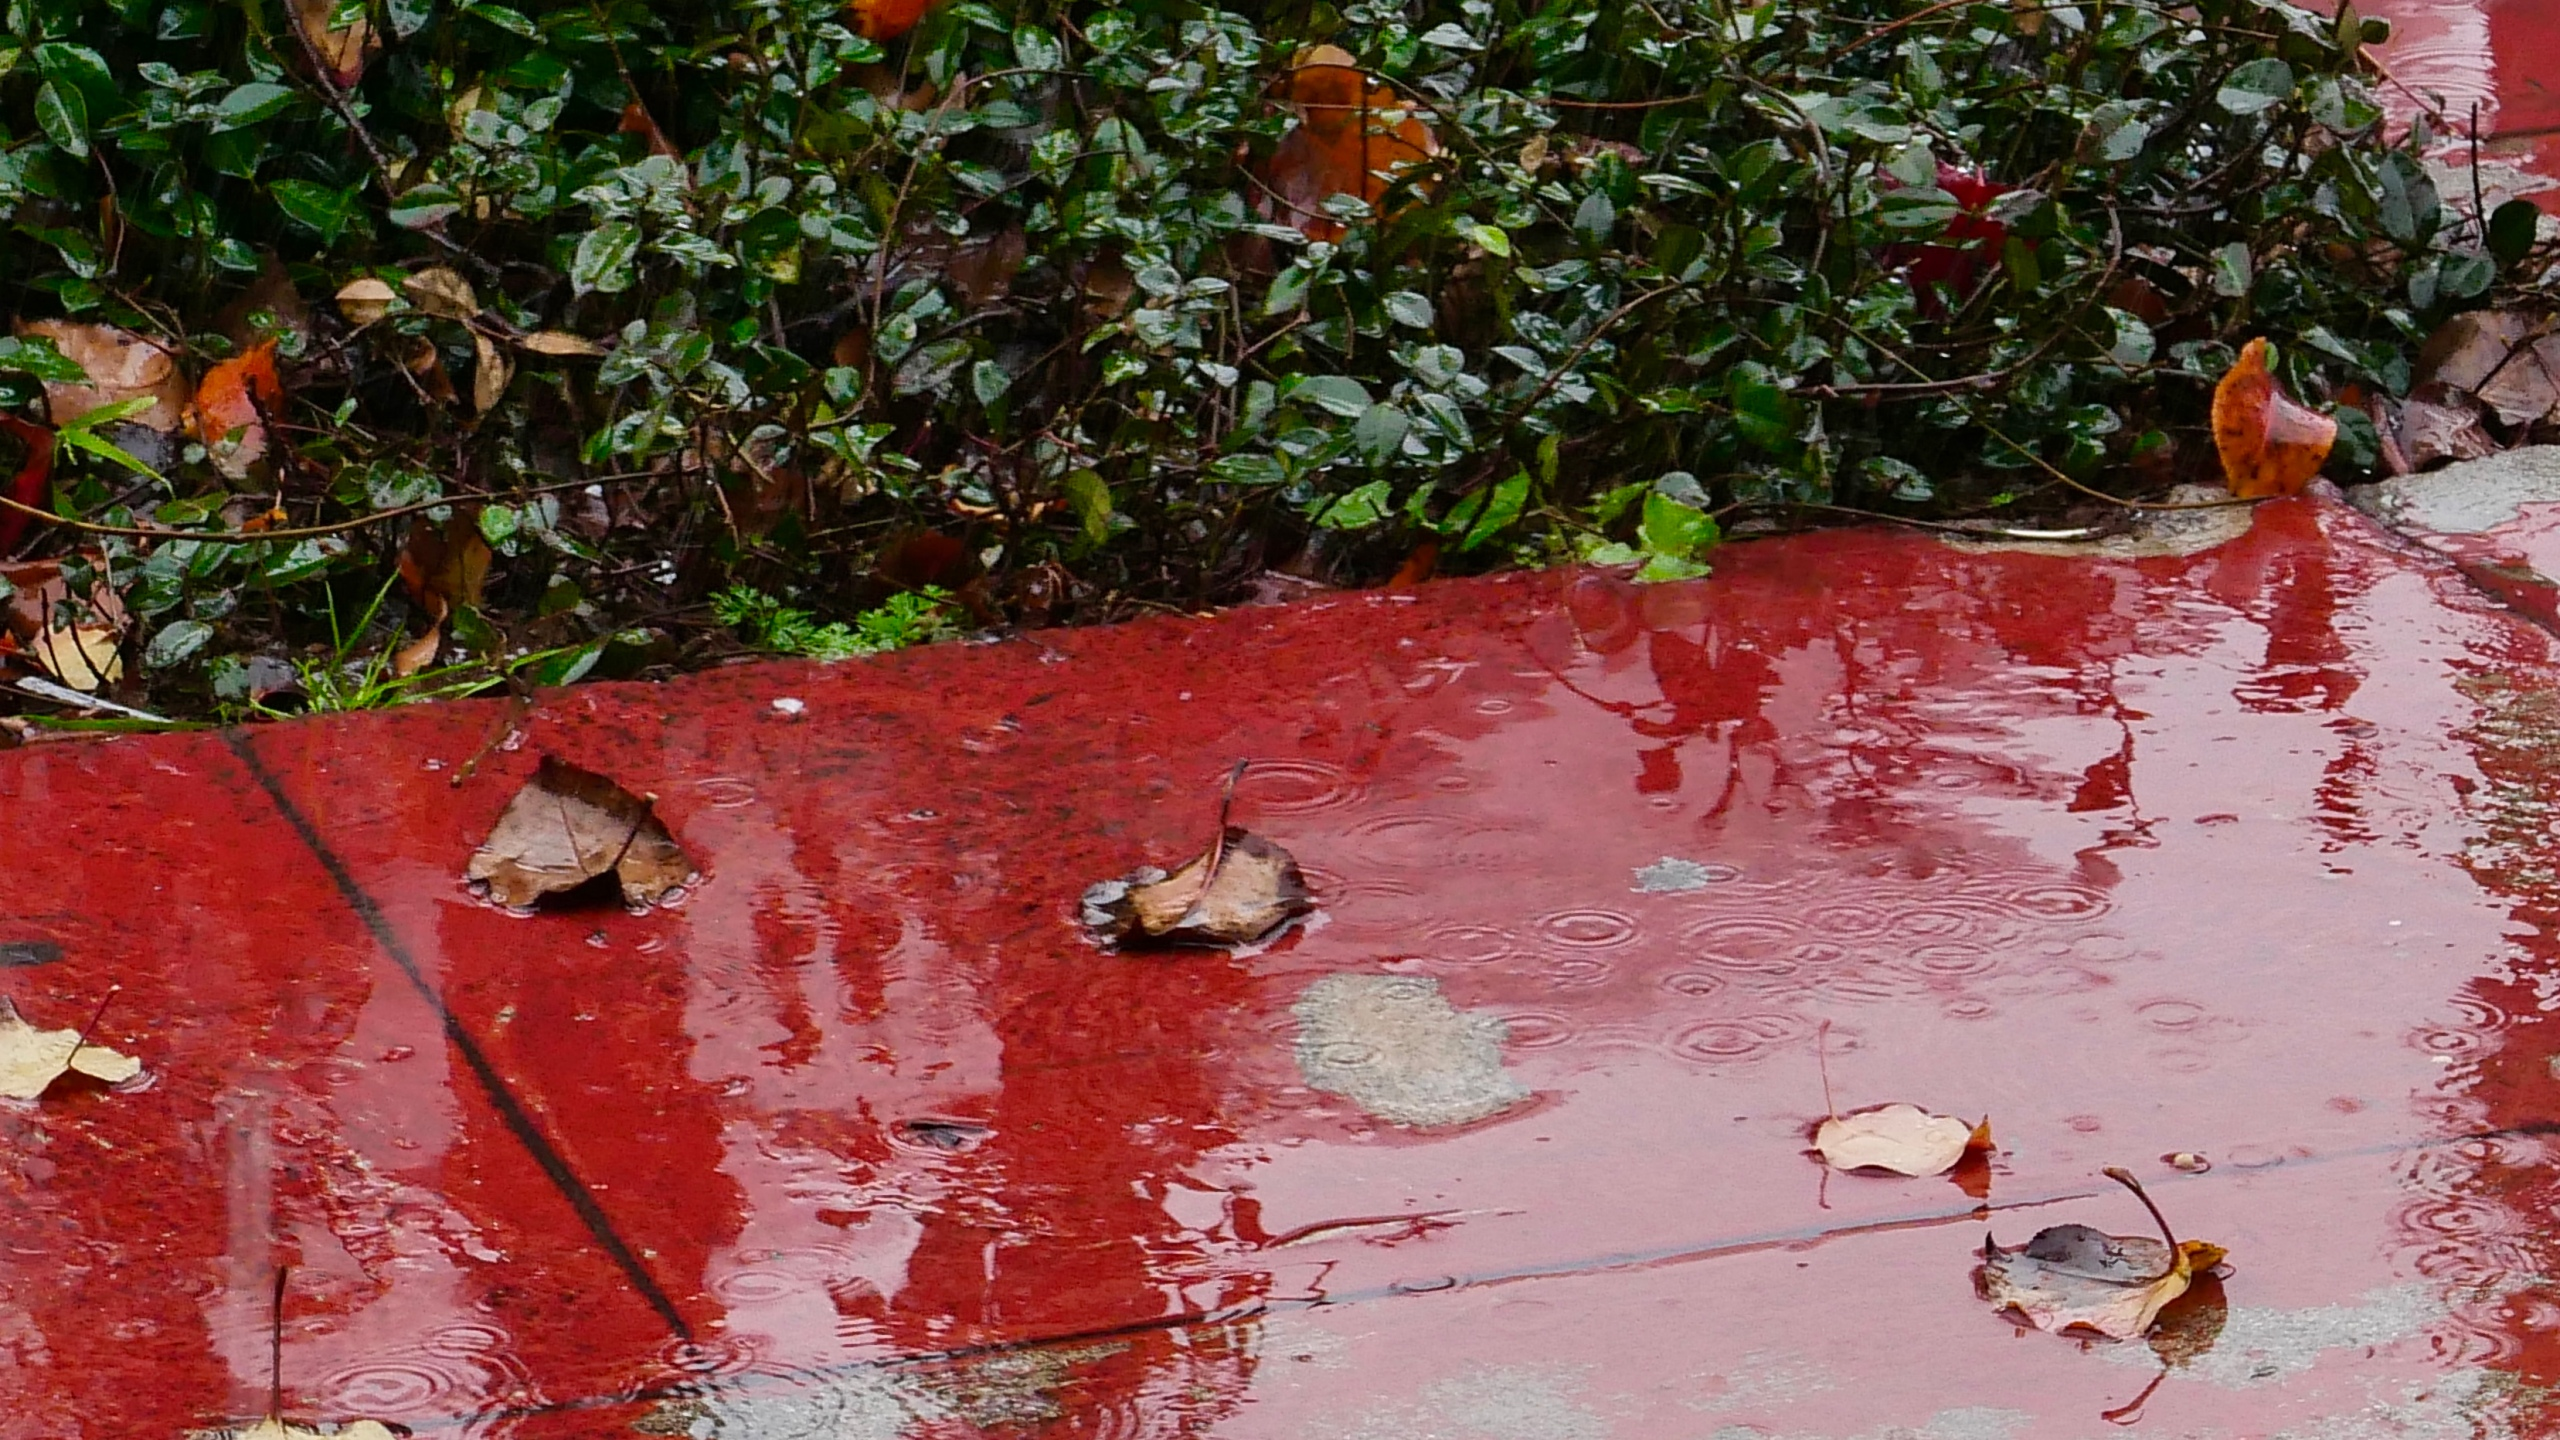 A wet sidewalk is seen in a file photo. (Credit: Getty Images)